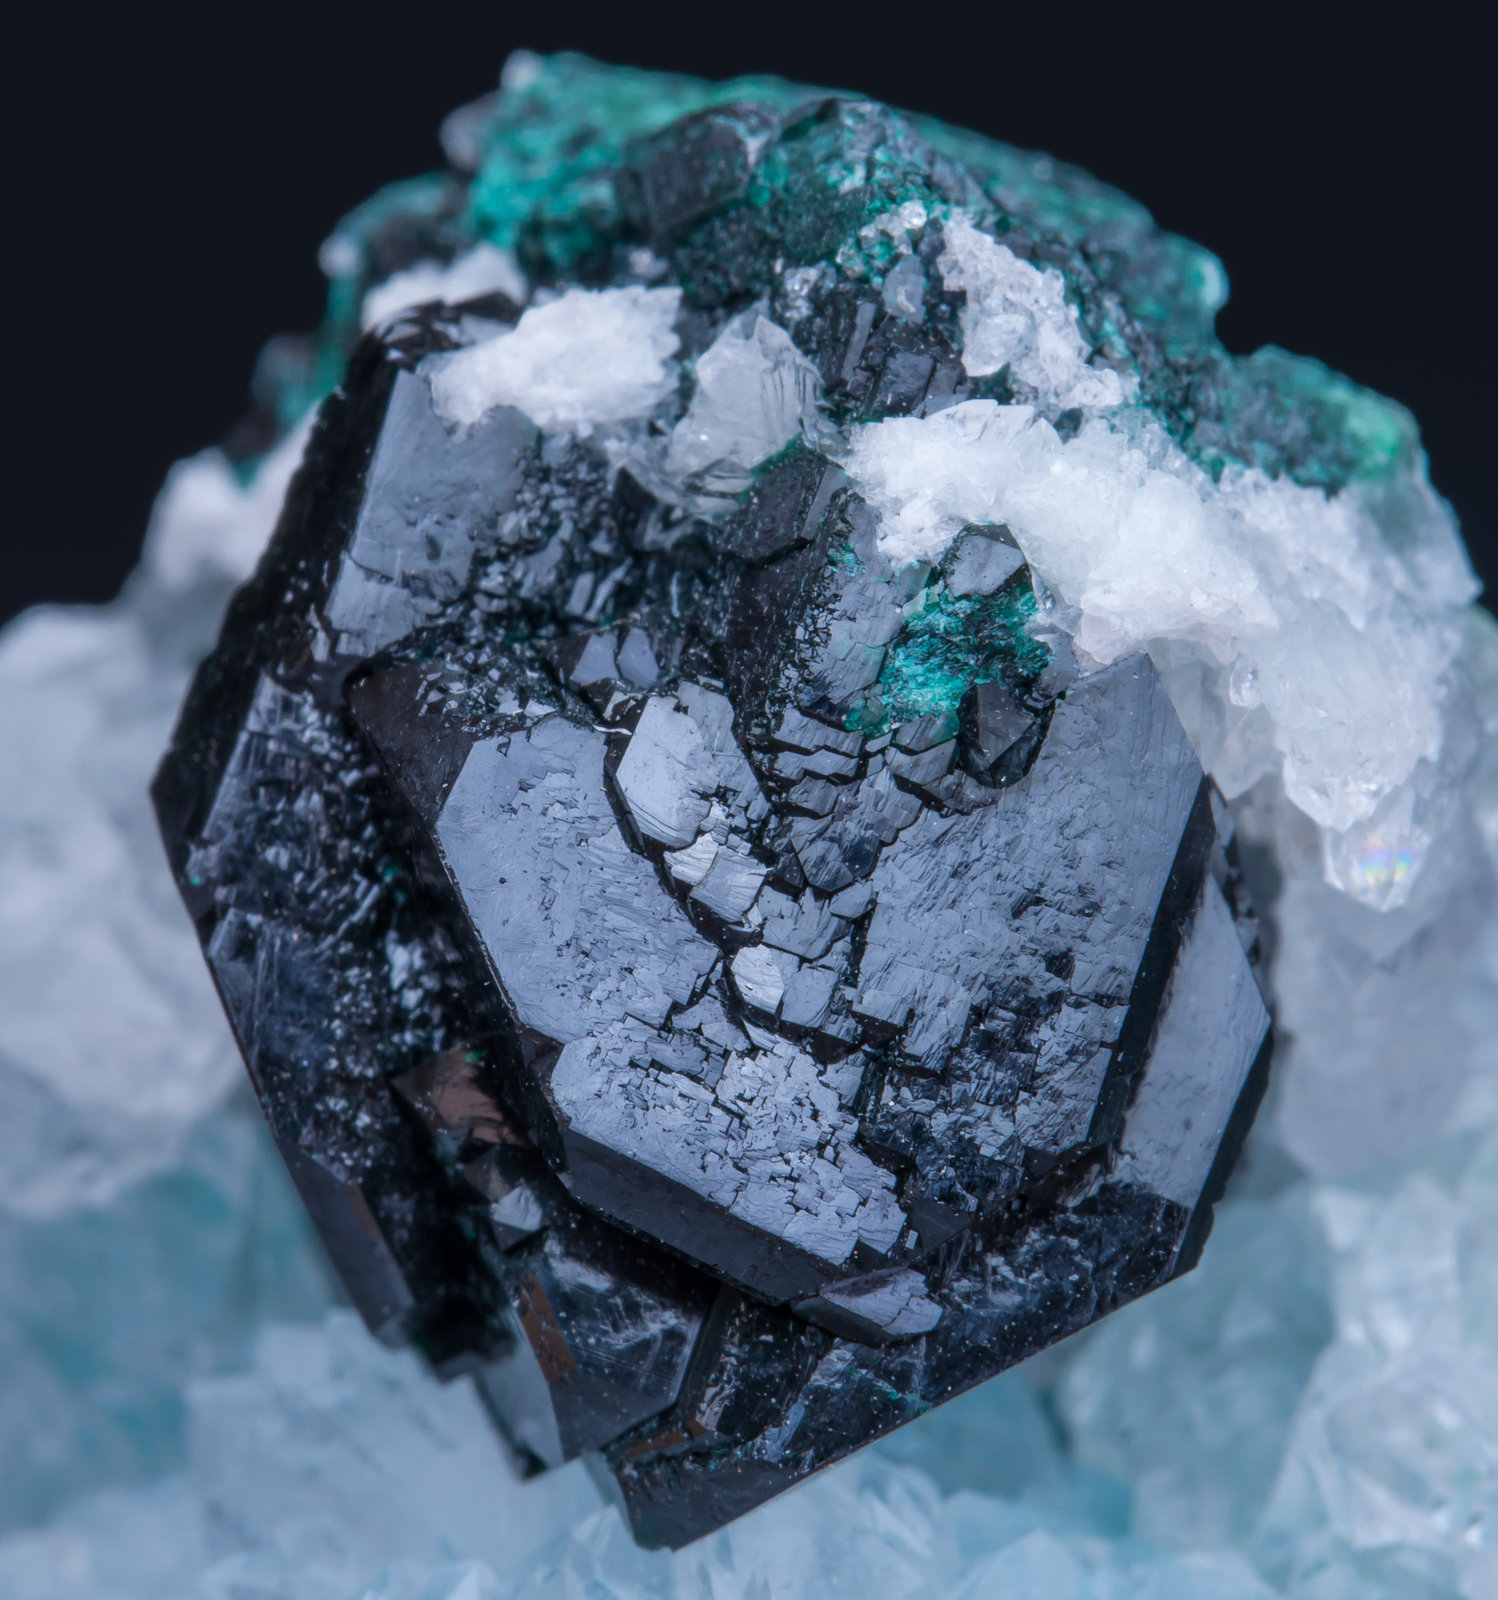 specimens/s_imagesAK3/Clinoatacamite-ML92AK3d.jpg